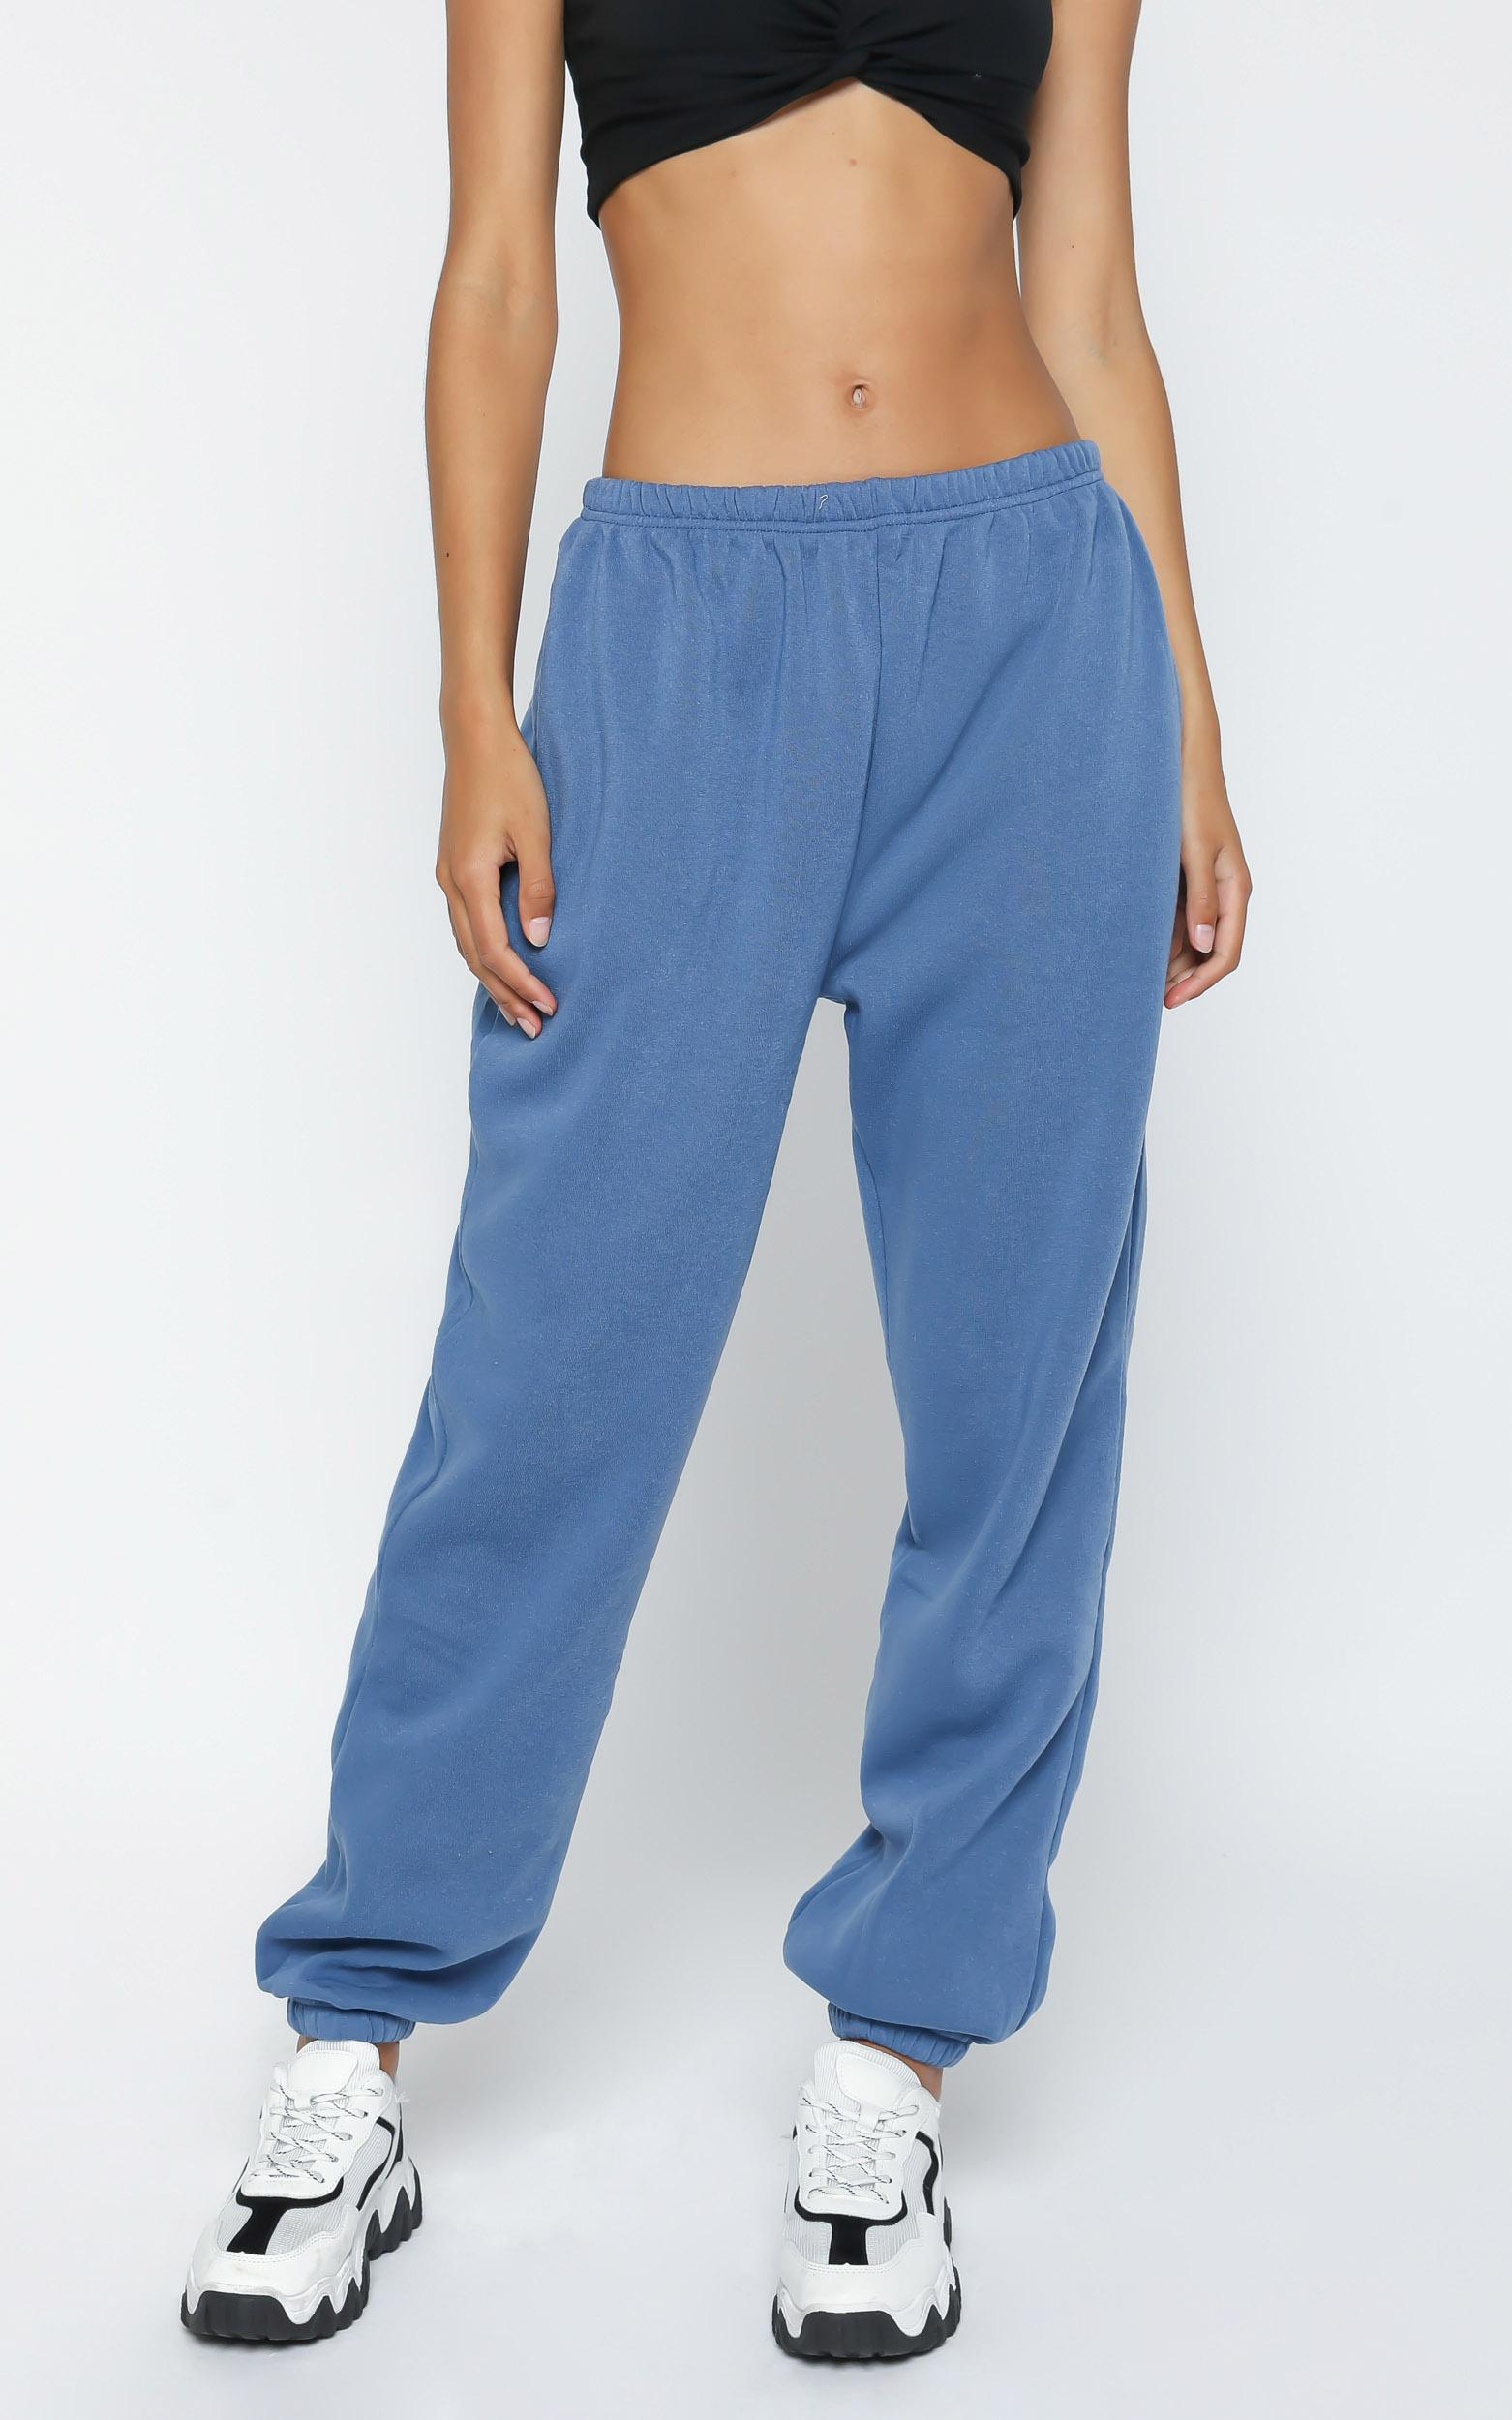 Lioness - Academy Sweatpants in Dusty Blue - 4 (XXS), BLU1, hi-res image number null